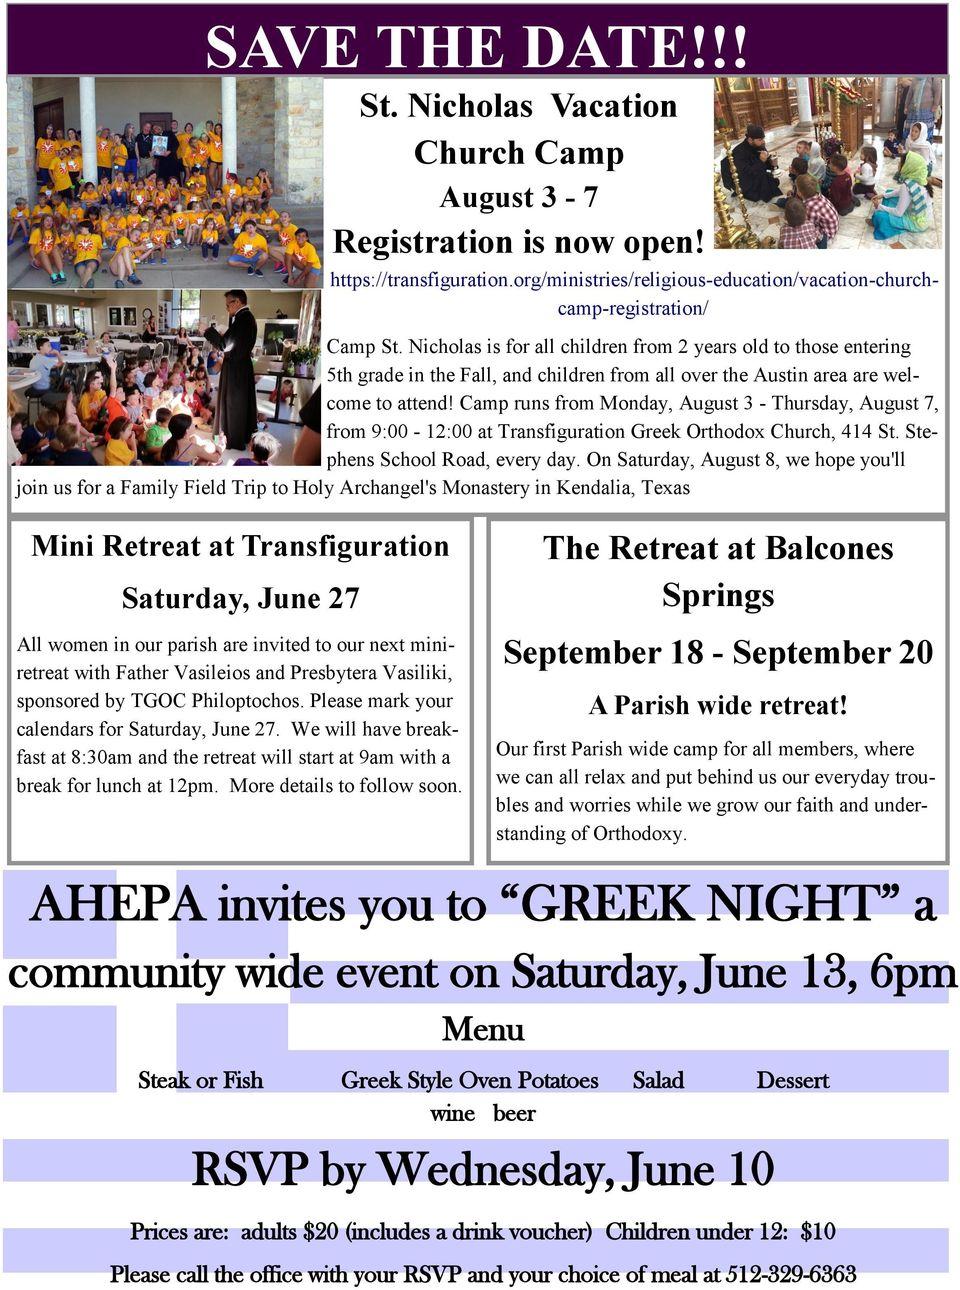 Camp runs from Monday, August 3 - Thursday, August 7, from 9:00-12:00 at Transfiguration Greek Orthodox Church, 414 St. Stephens School Road, every day.